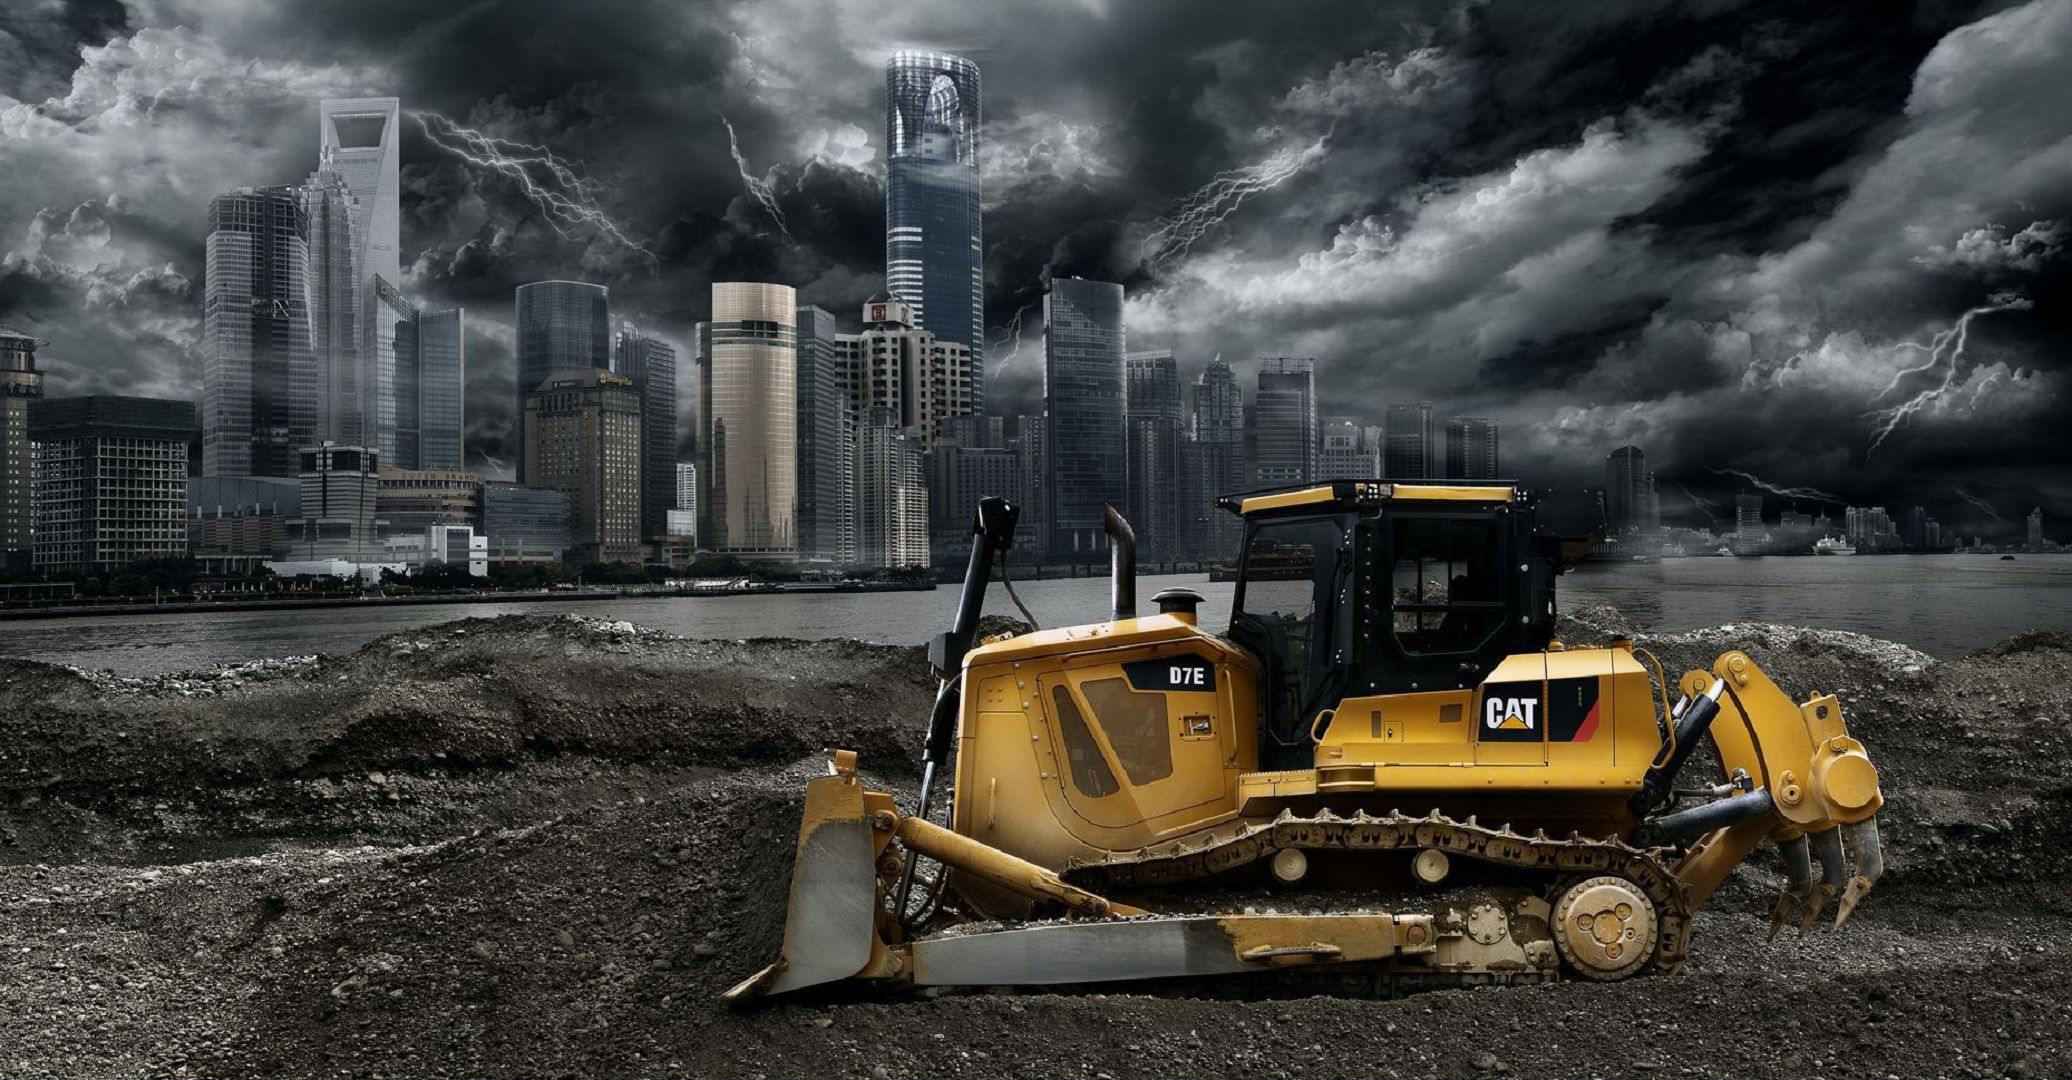 Bulldozer Wallpaper Pack